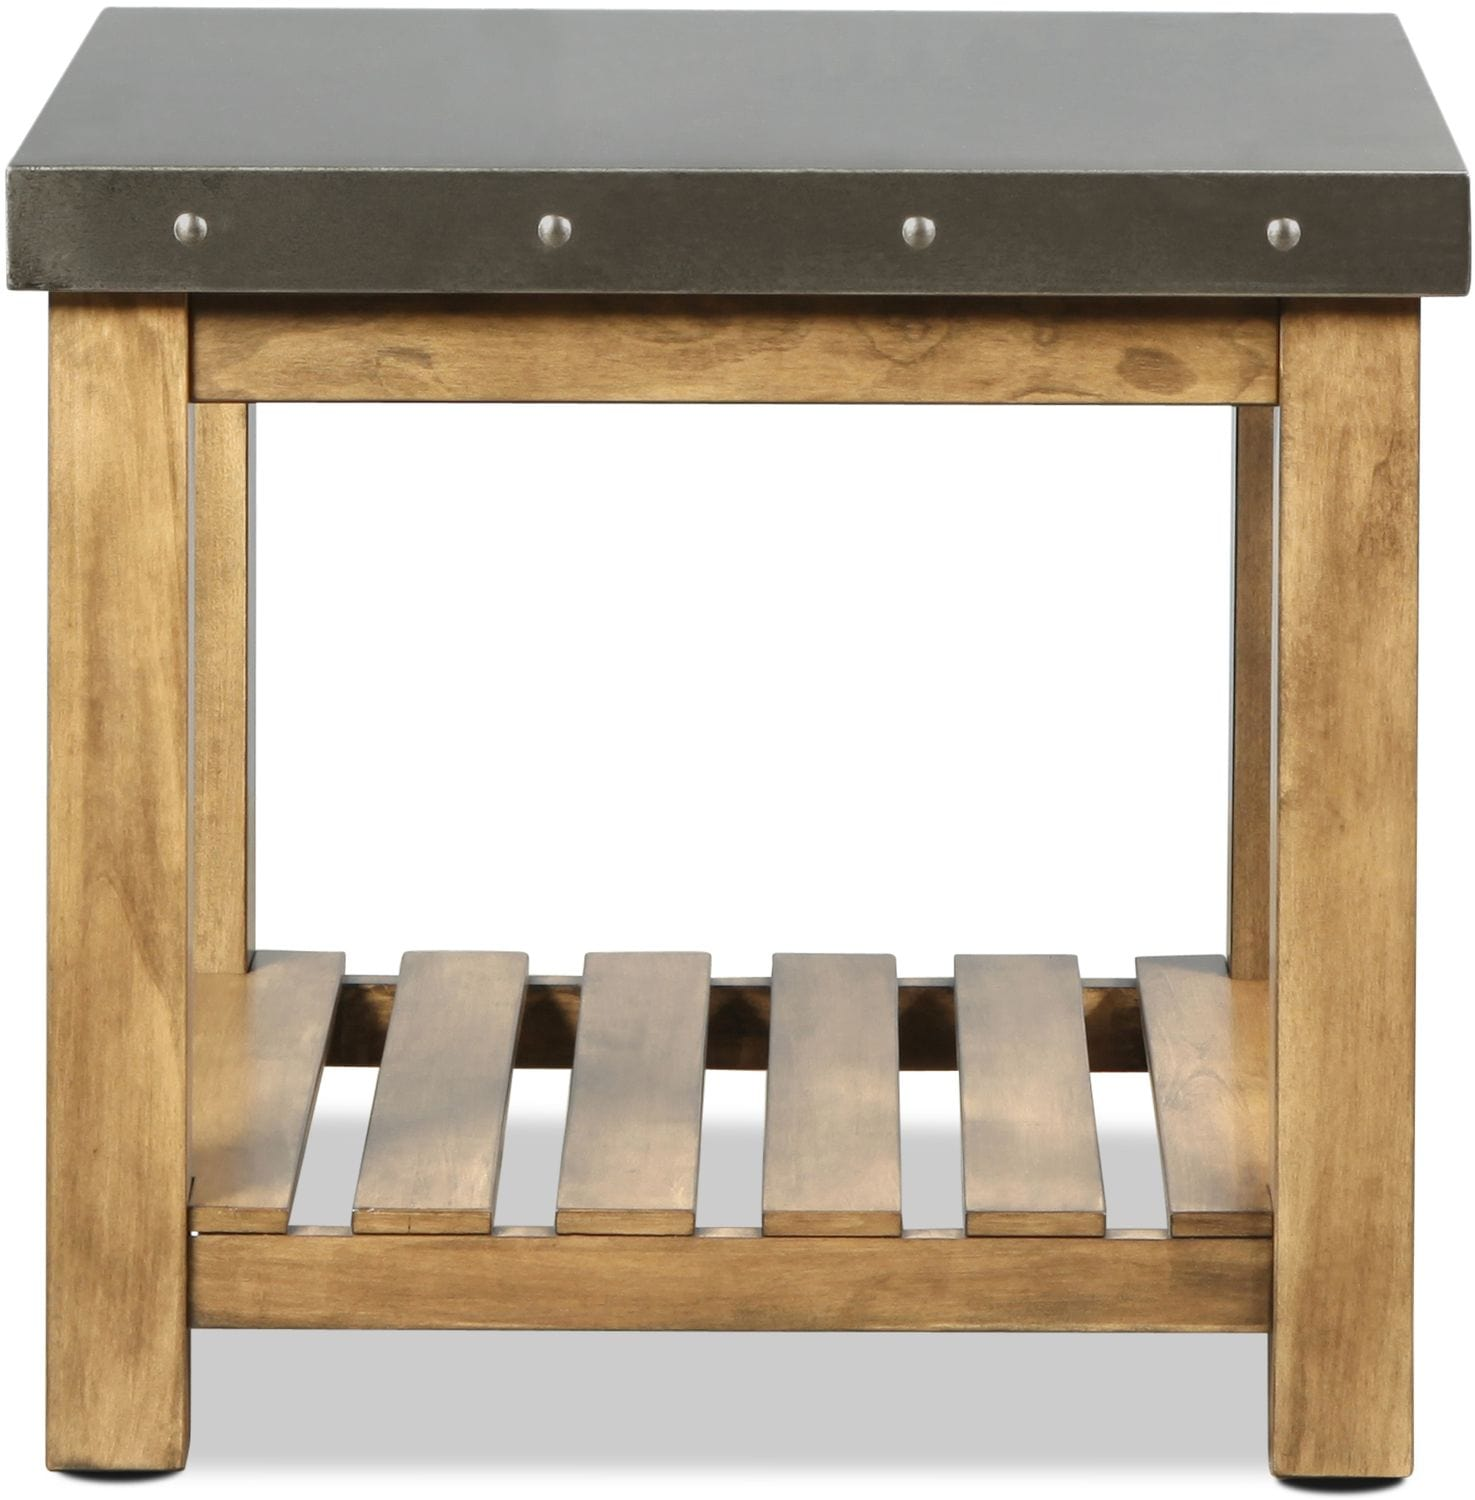 Allegro End Table - Weathered Wood with Metal